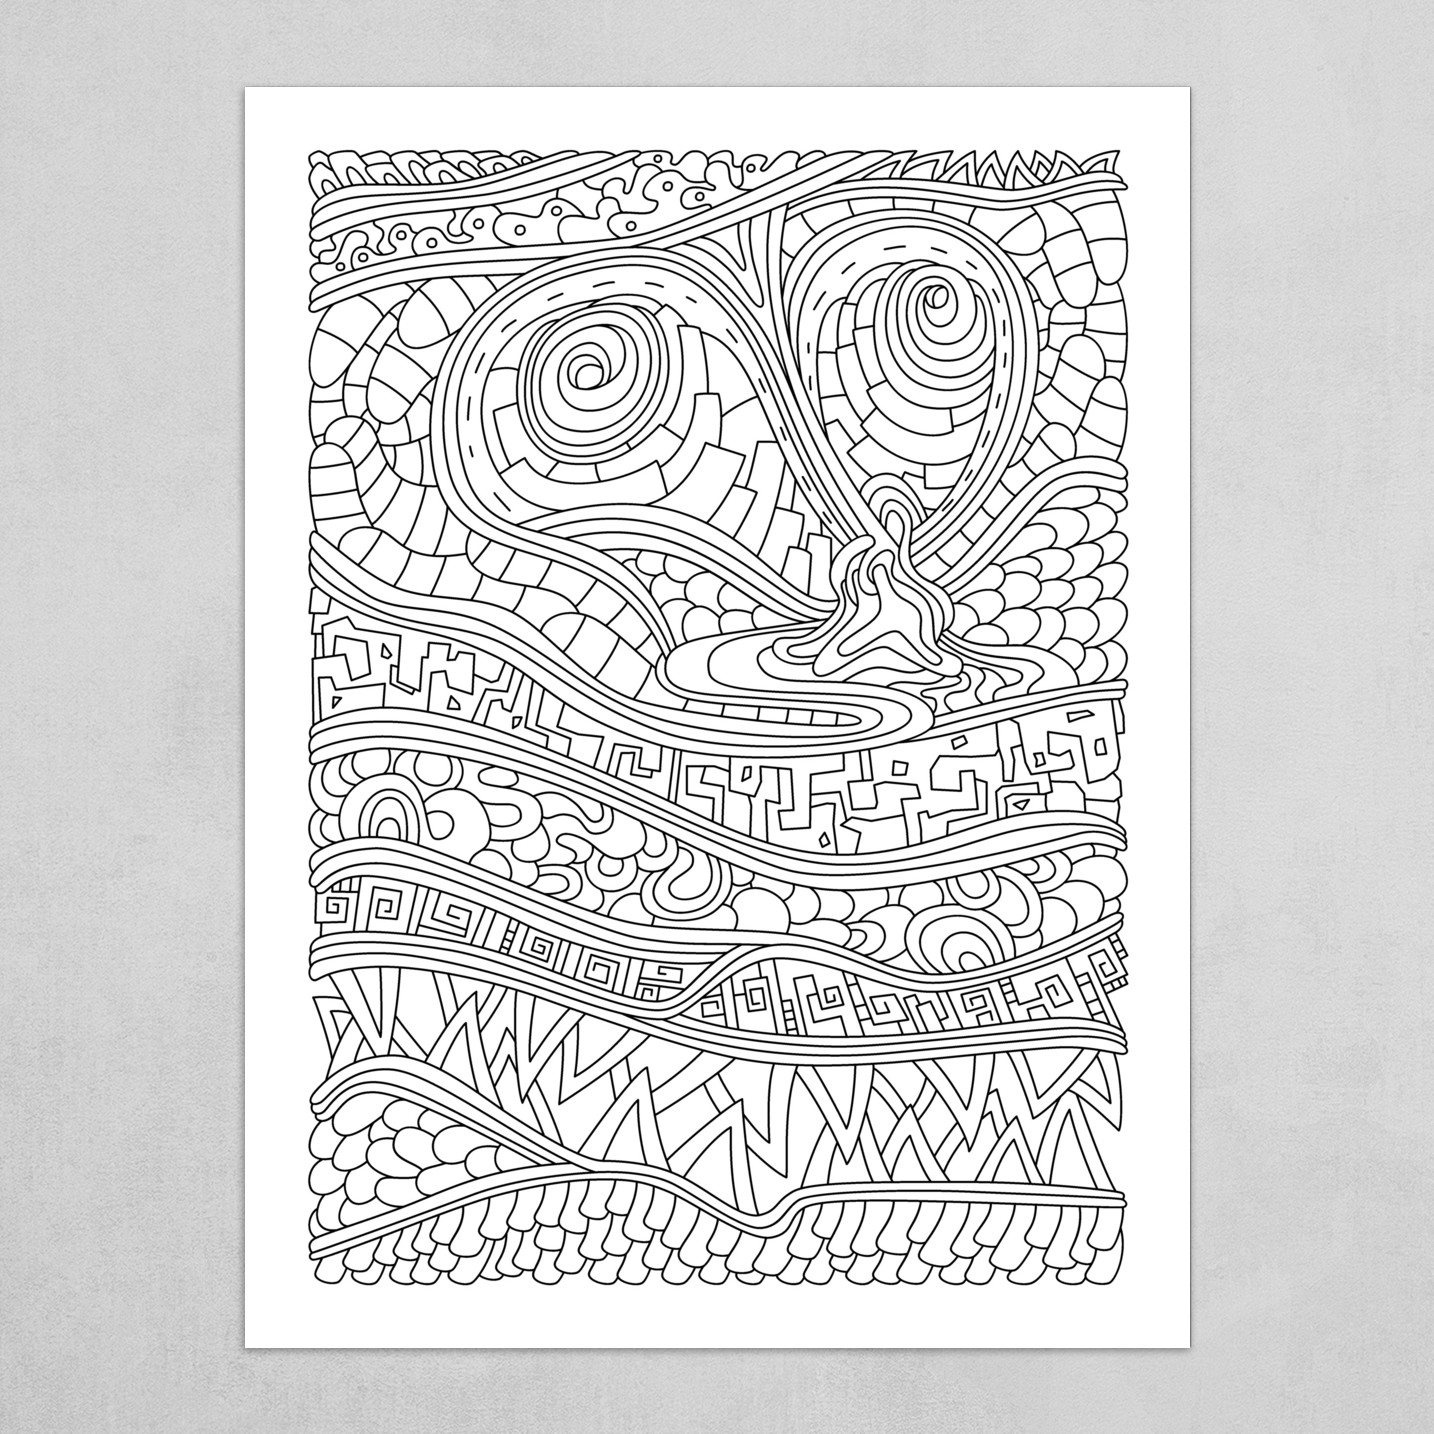 Wandering Abstract Line Art 03: Black & White